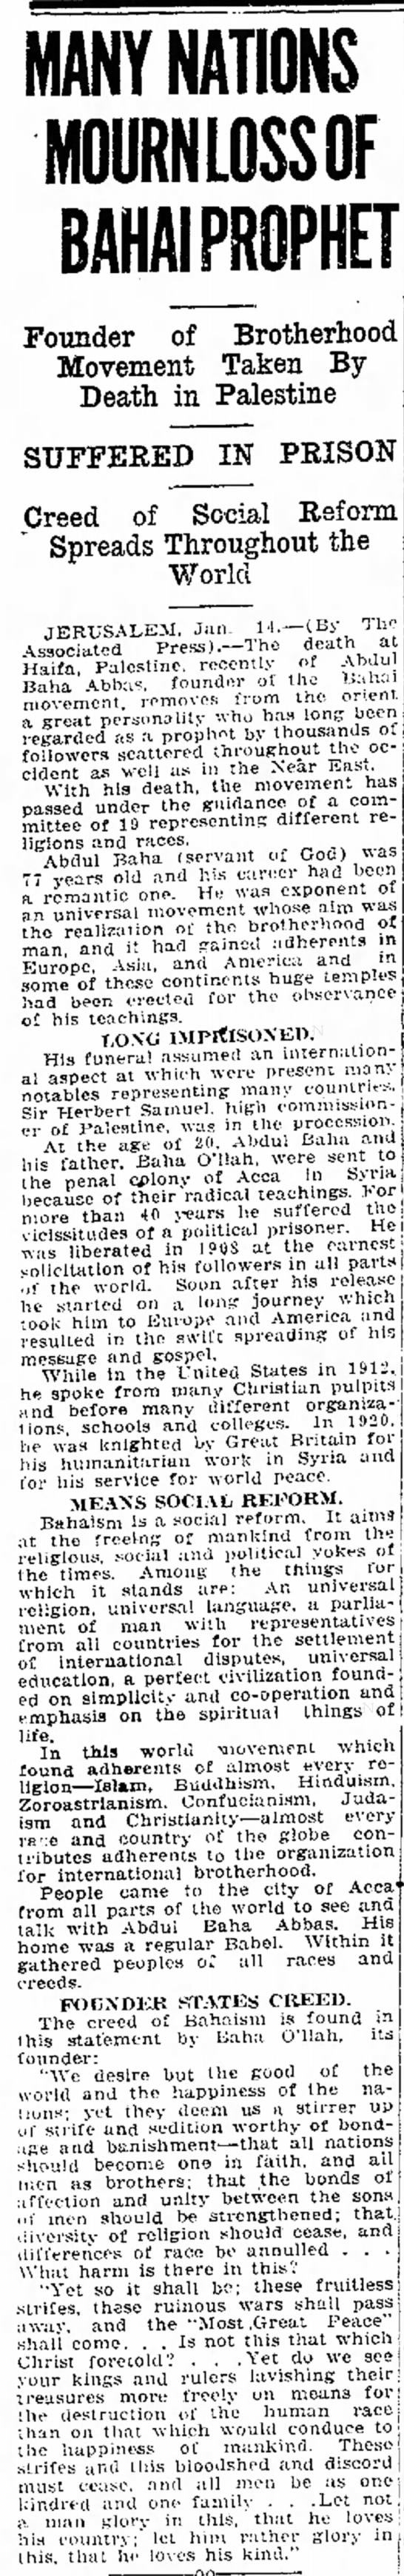 echo of AP extended coverage of passing of Abdu'l-Baha -